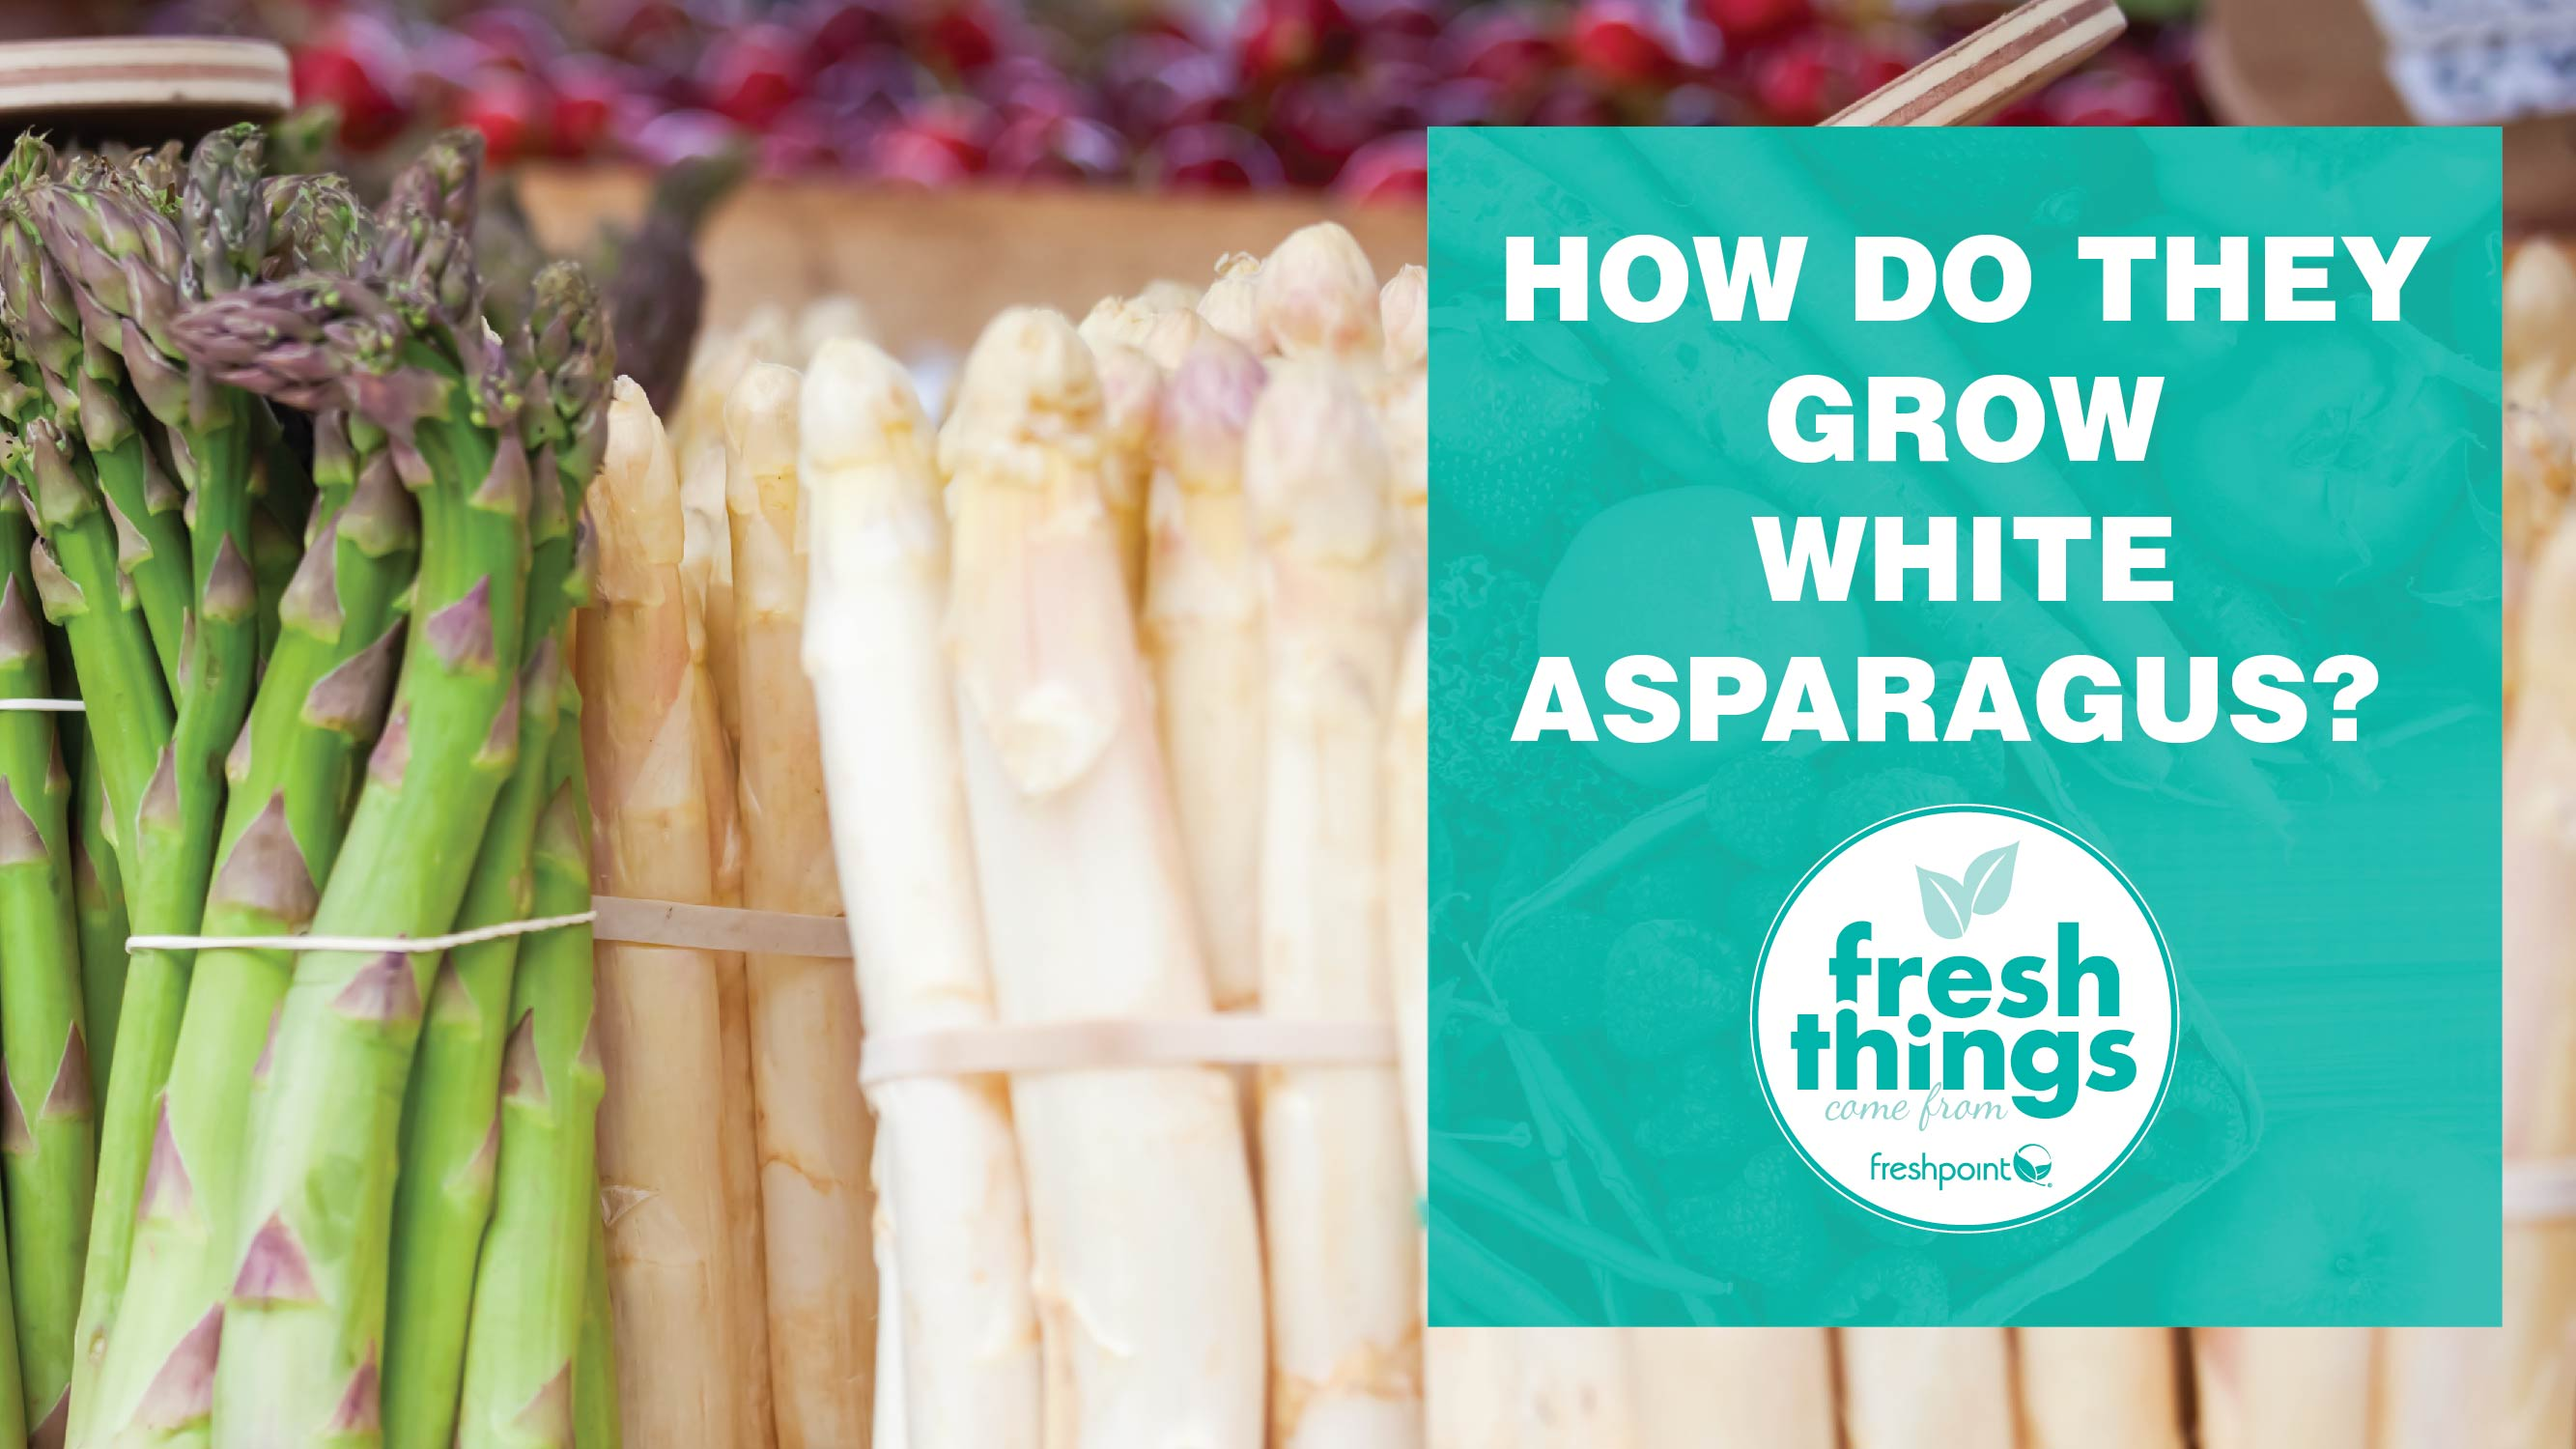 freshpoint-produce-how-do-they-grow-white-asparagus